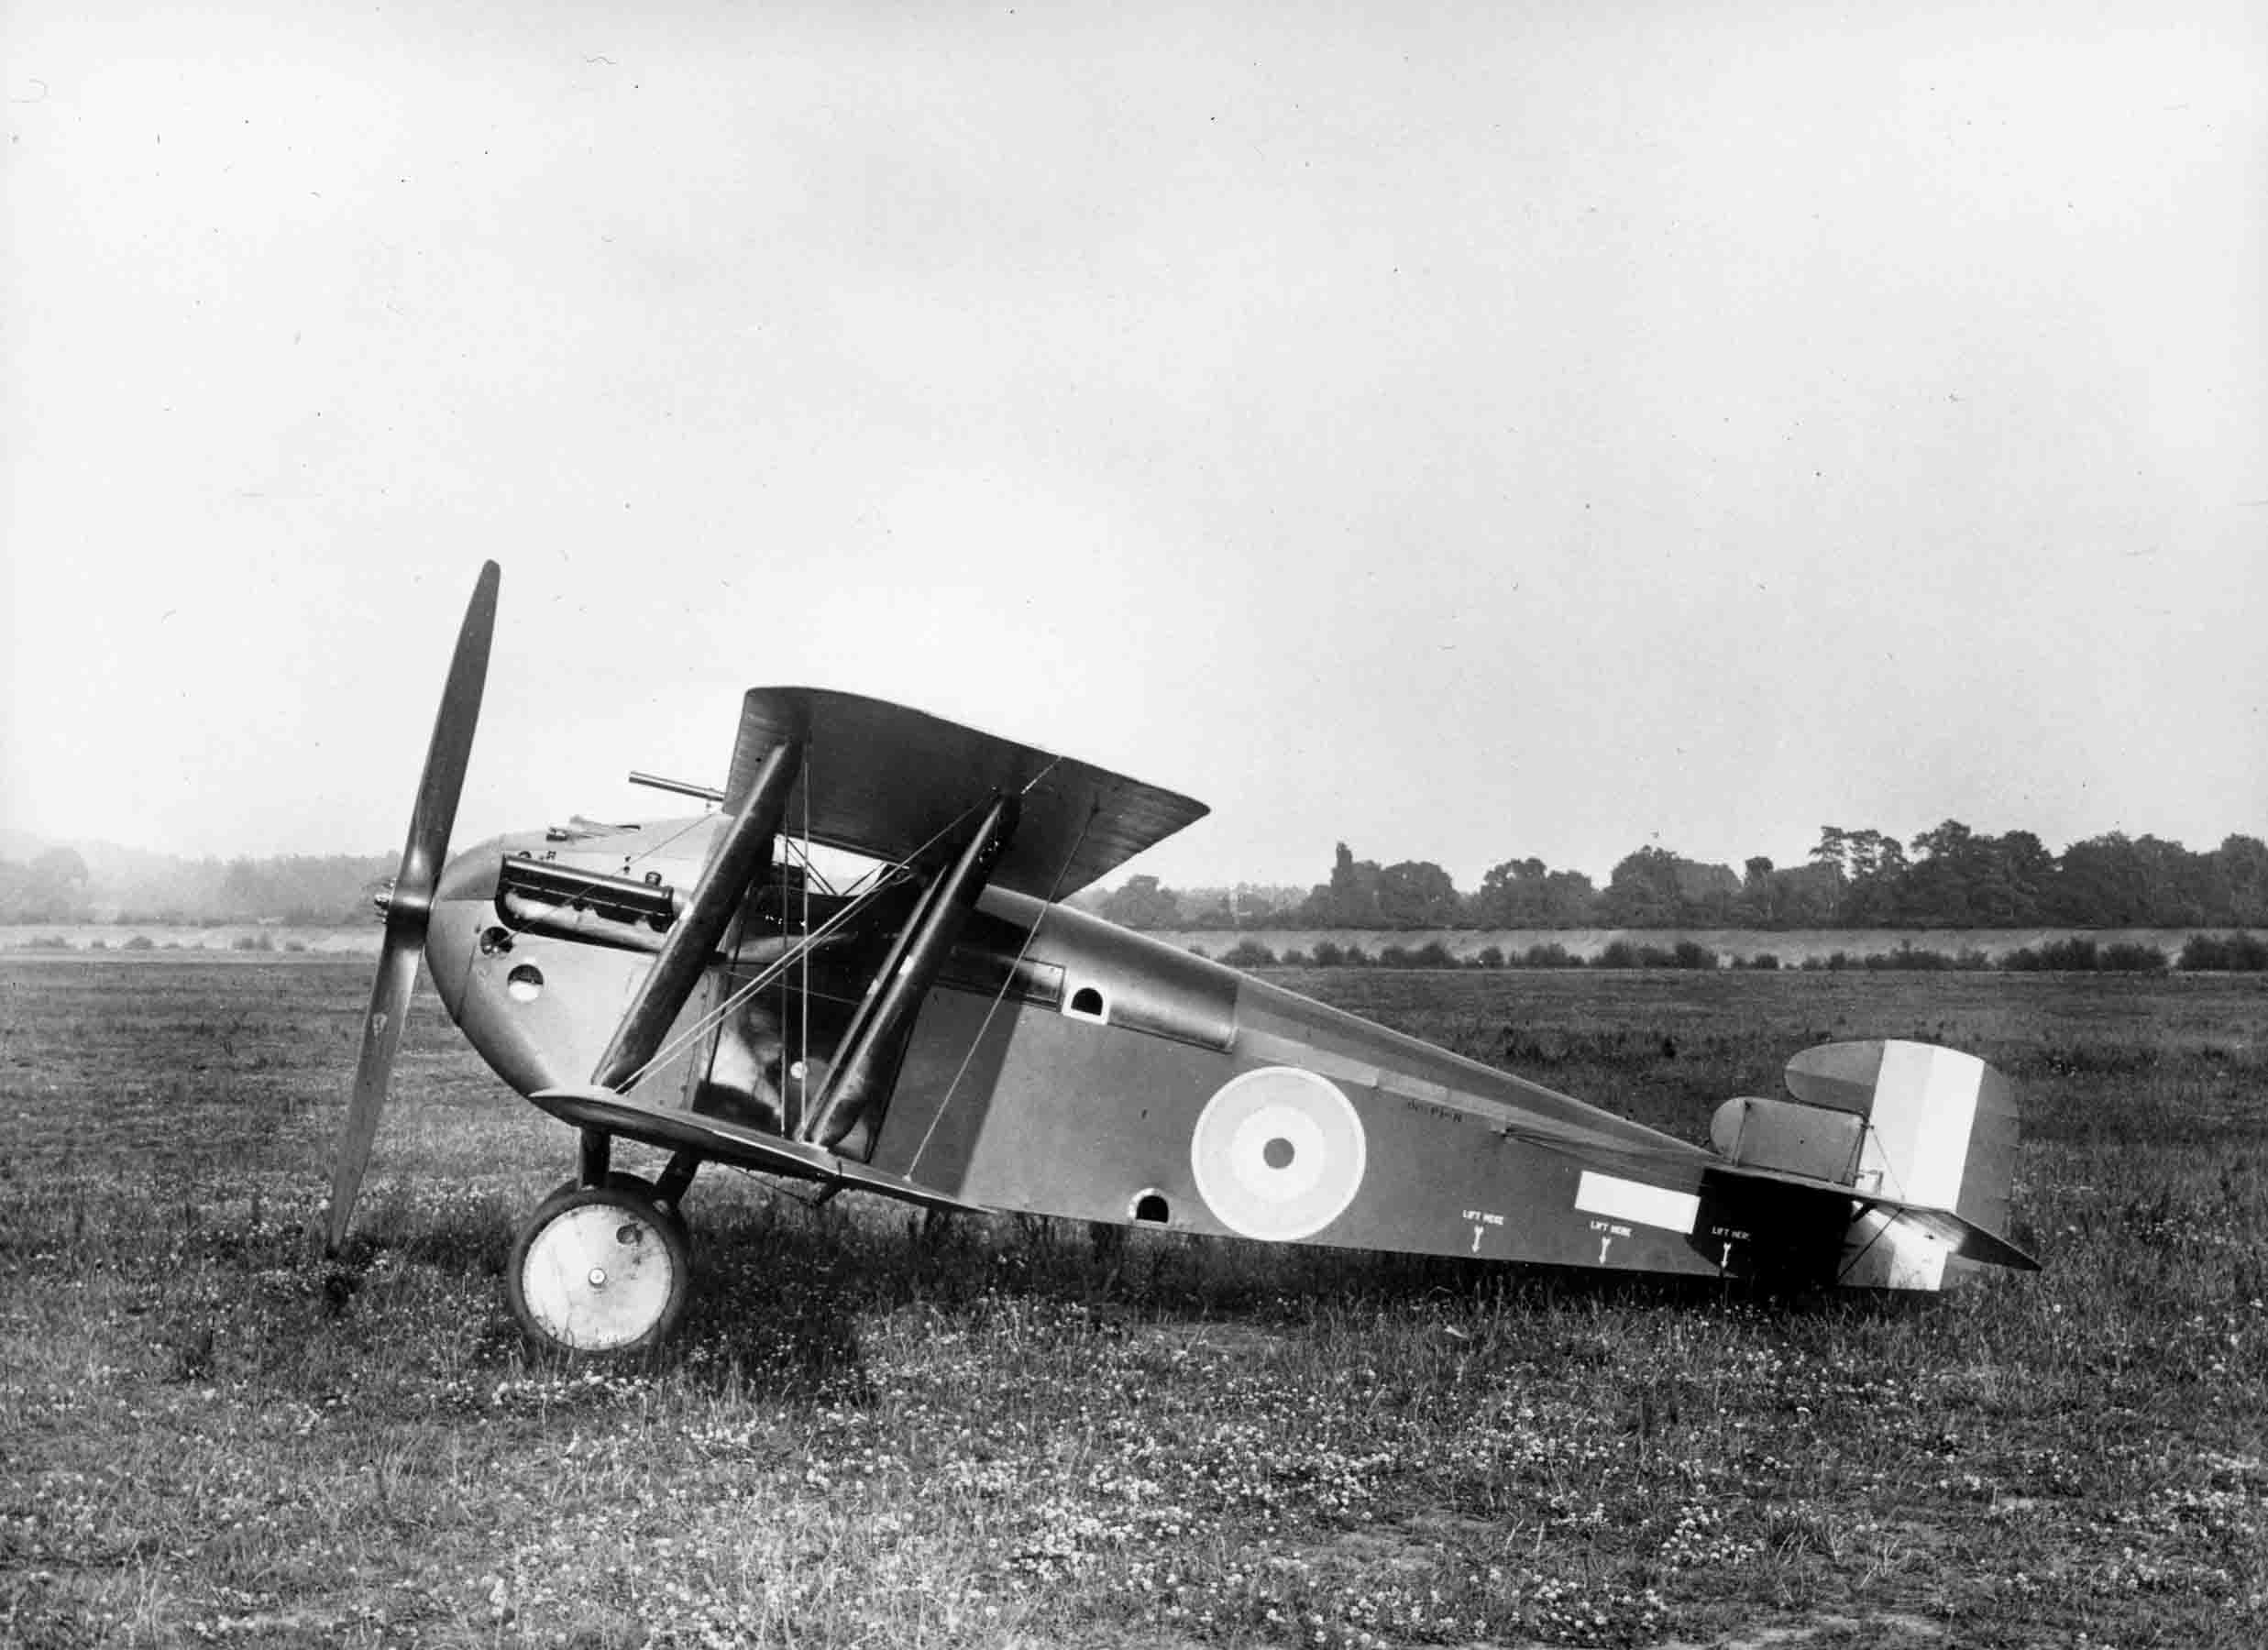 X003-2602/15949: Although this is the second Dolphin prototype, production-standard aircraft retained many of its basic features.  The aircraft is in its original form with small upper wing radiators, no propeller spinner and the initial version of the balanced rudder.  It is seen at Brooklands in July 1917.